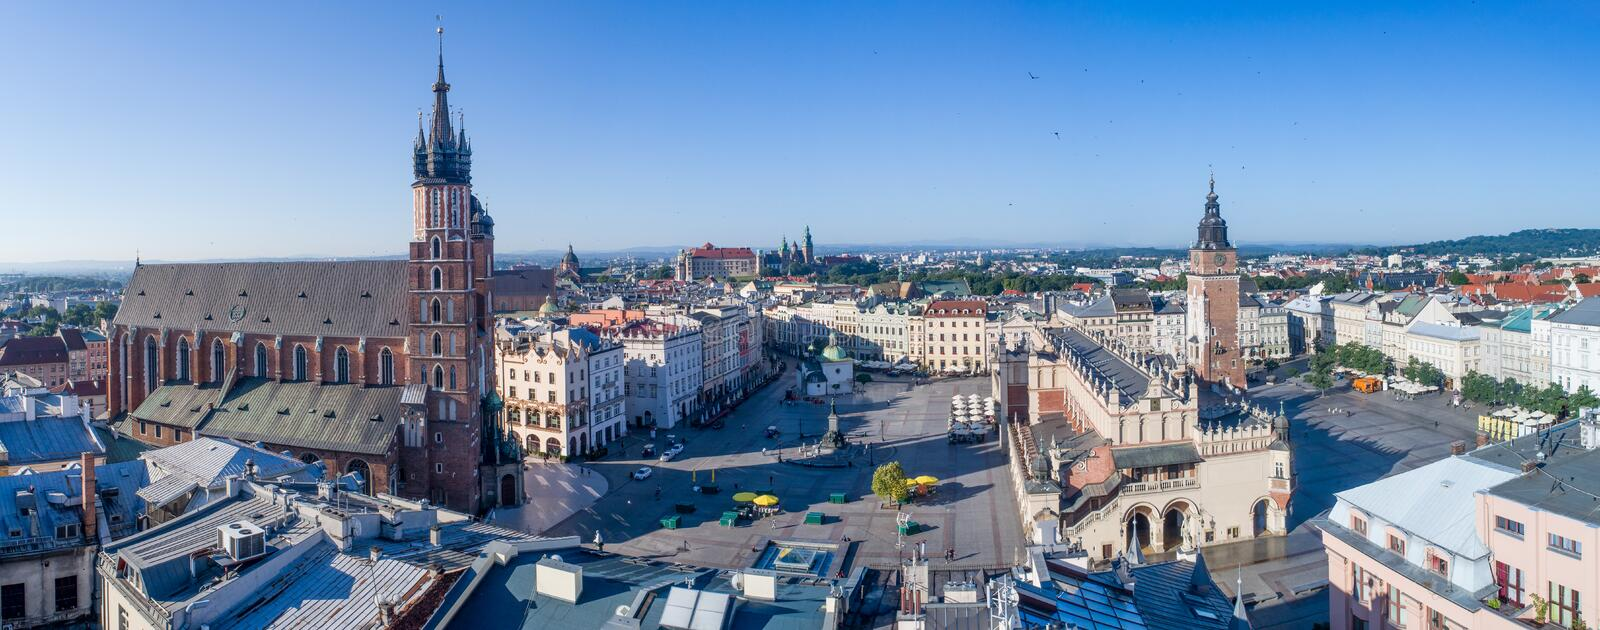 Krakow, Poland. Old city wide panorama with all main monuments stock image